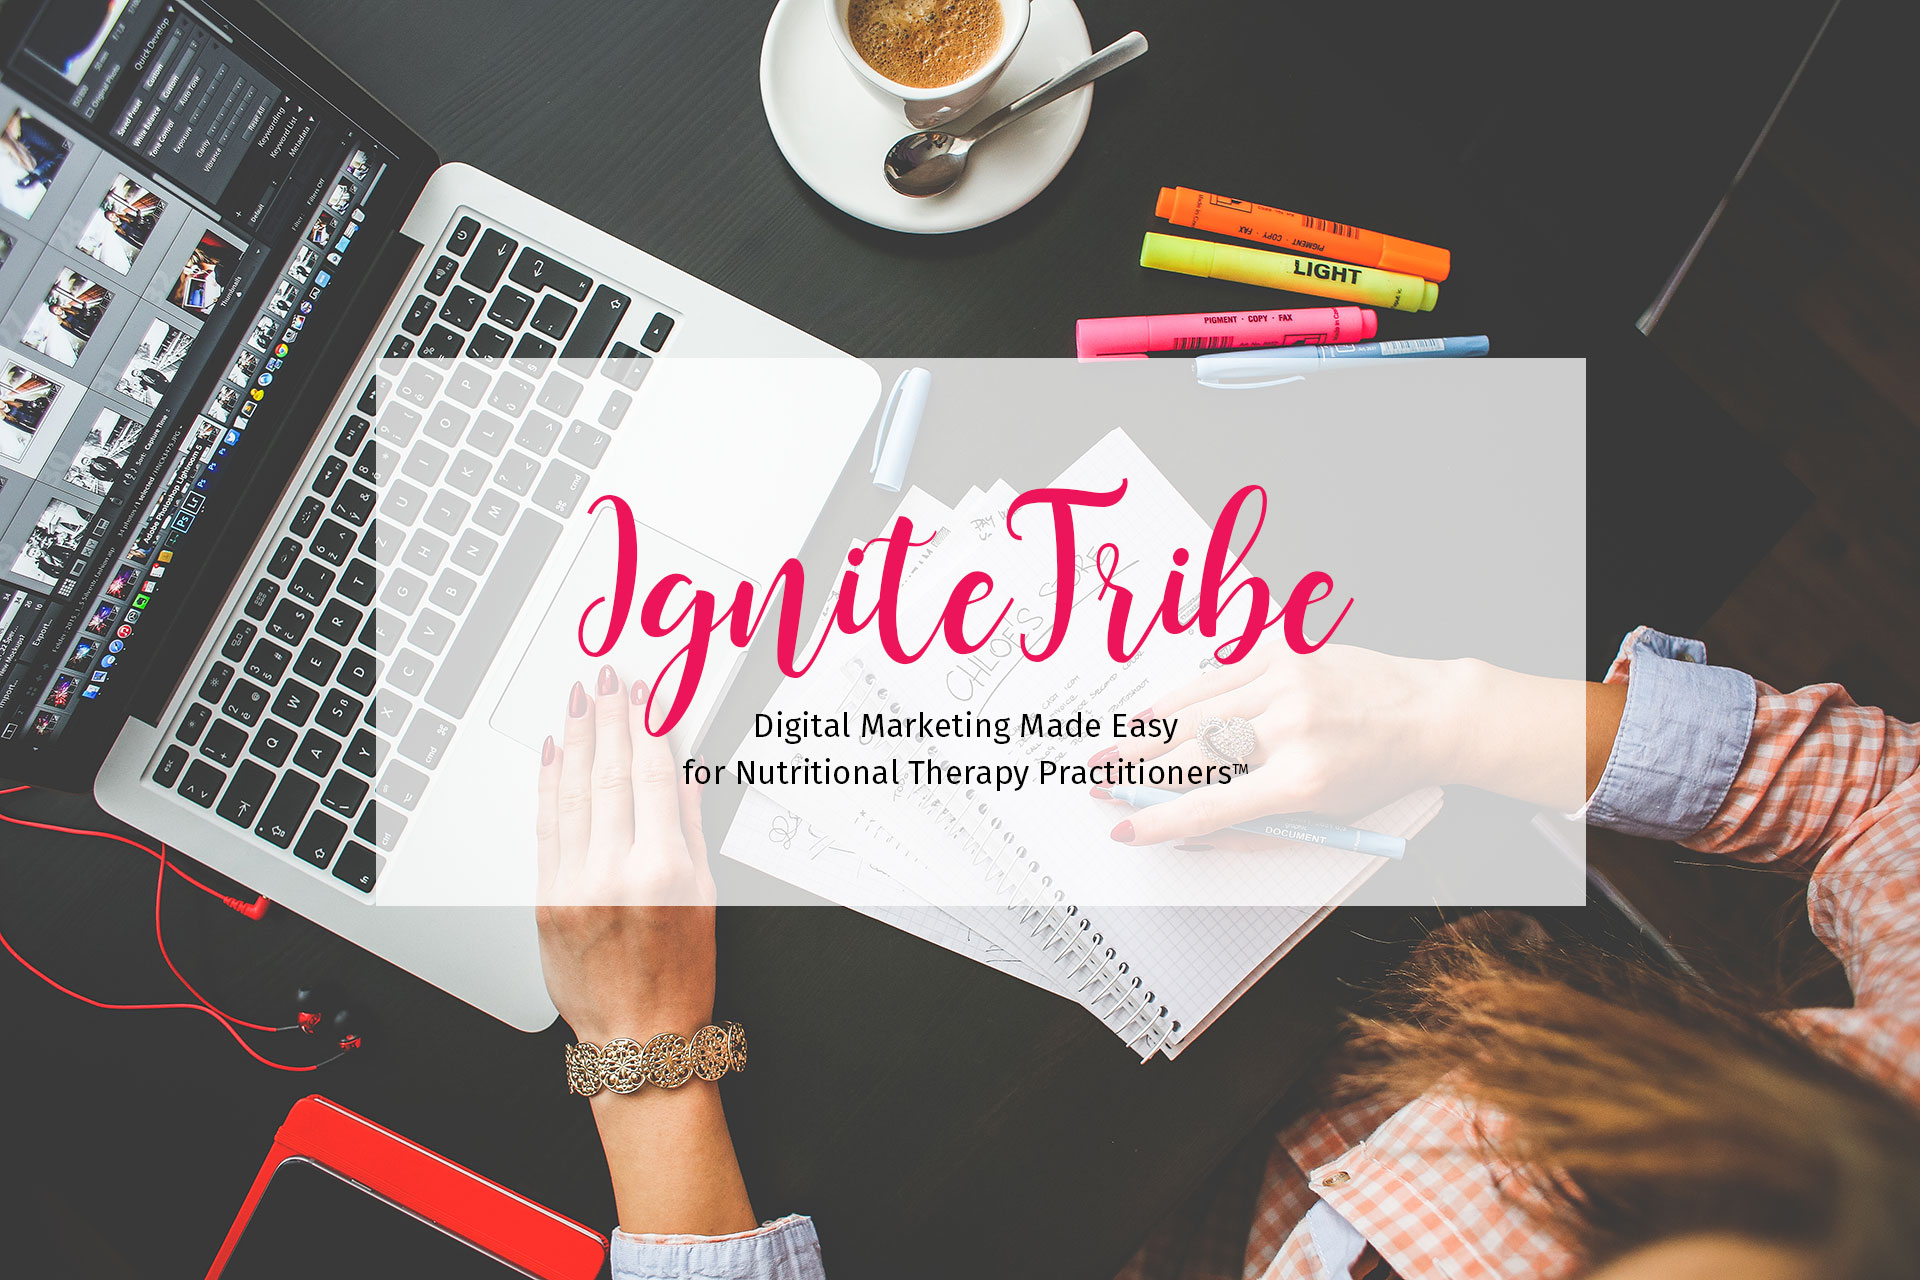 IgniteTribe: Digital Marketing Made Easy for Nutritional Therapy Practitioners Web Design